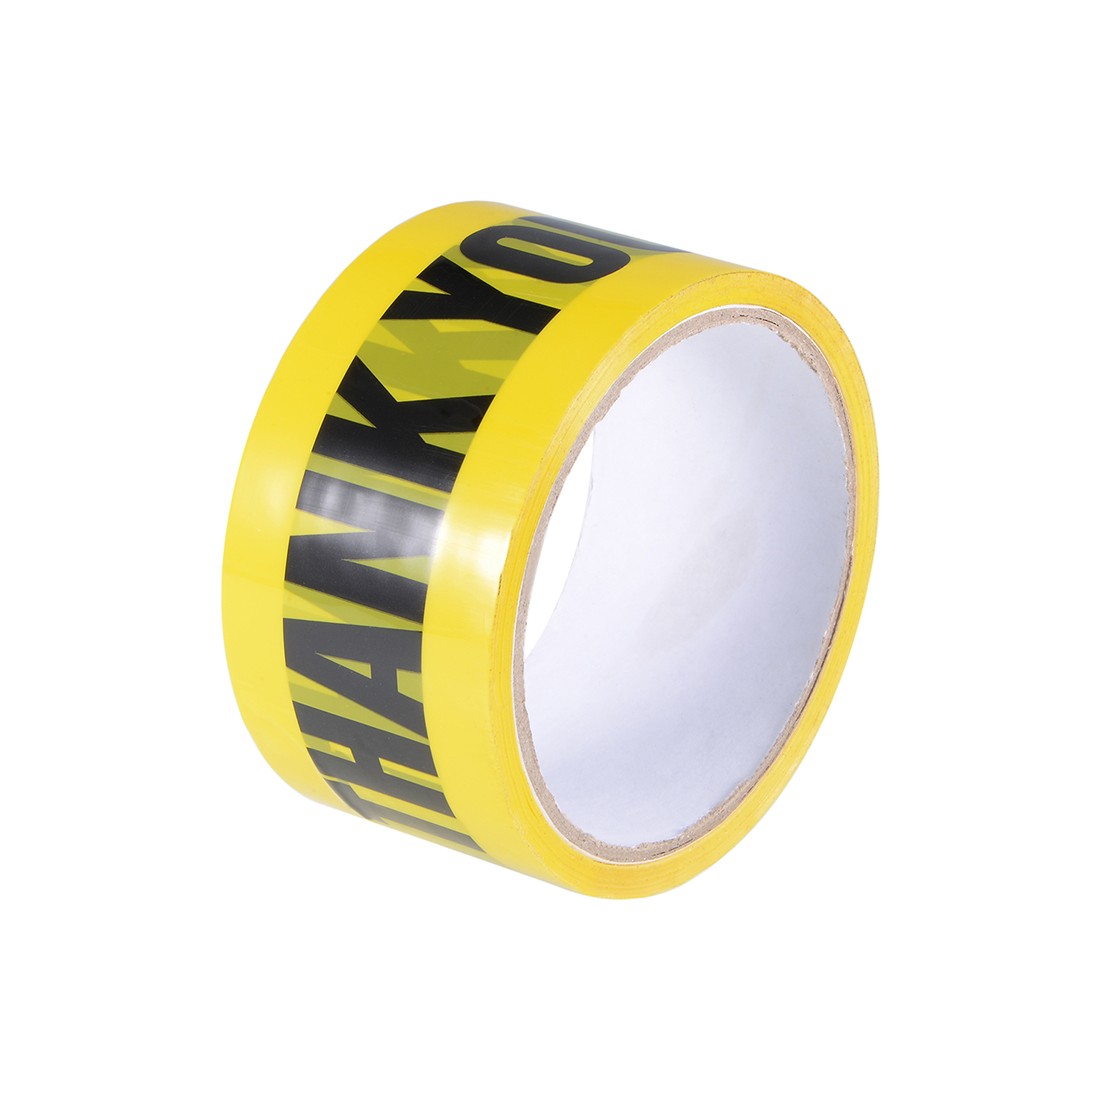 Caution Warning Adhesive Tape Bold THANK YOU Marking 82 Ft x 2 Inch Yellow Black